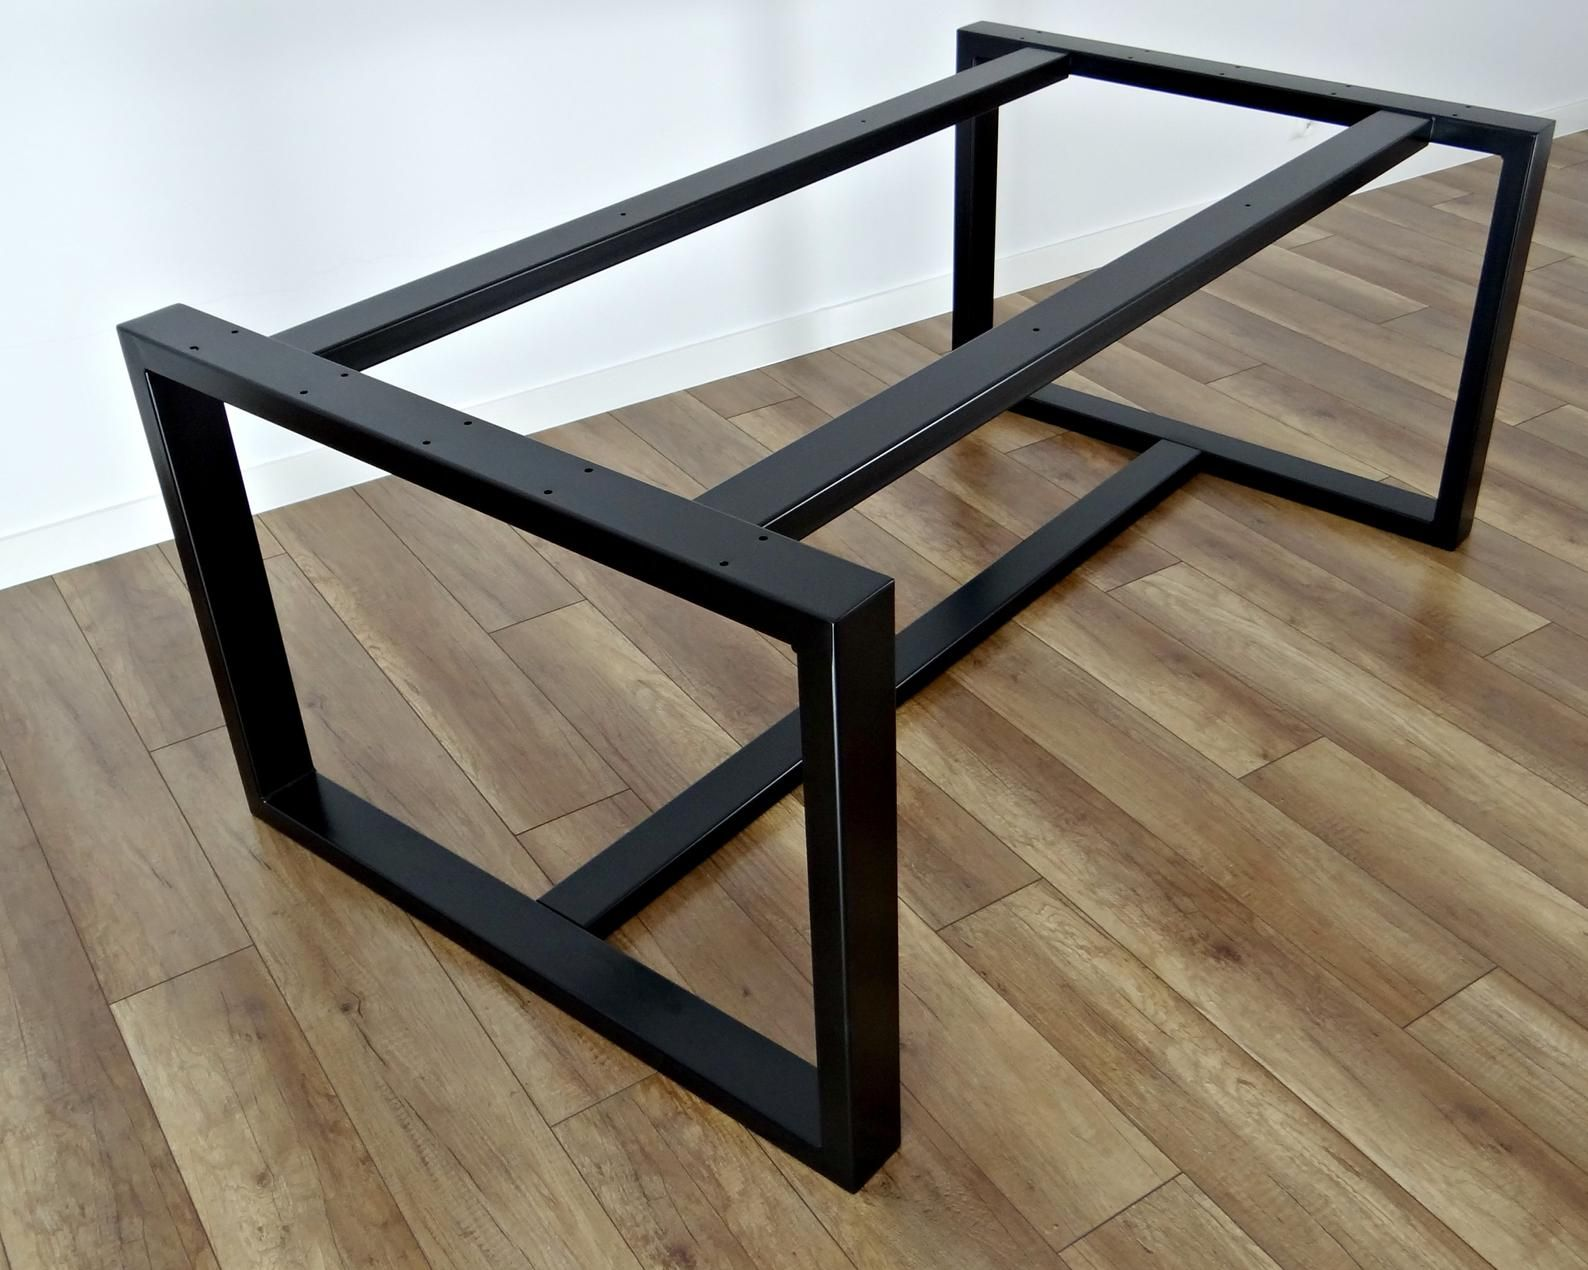 Metal Dining Table Legs For Heavy Marble And Glass Top Etsy In 2020 Dining Table Legs Steel Table Legs Iron Table Legs